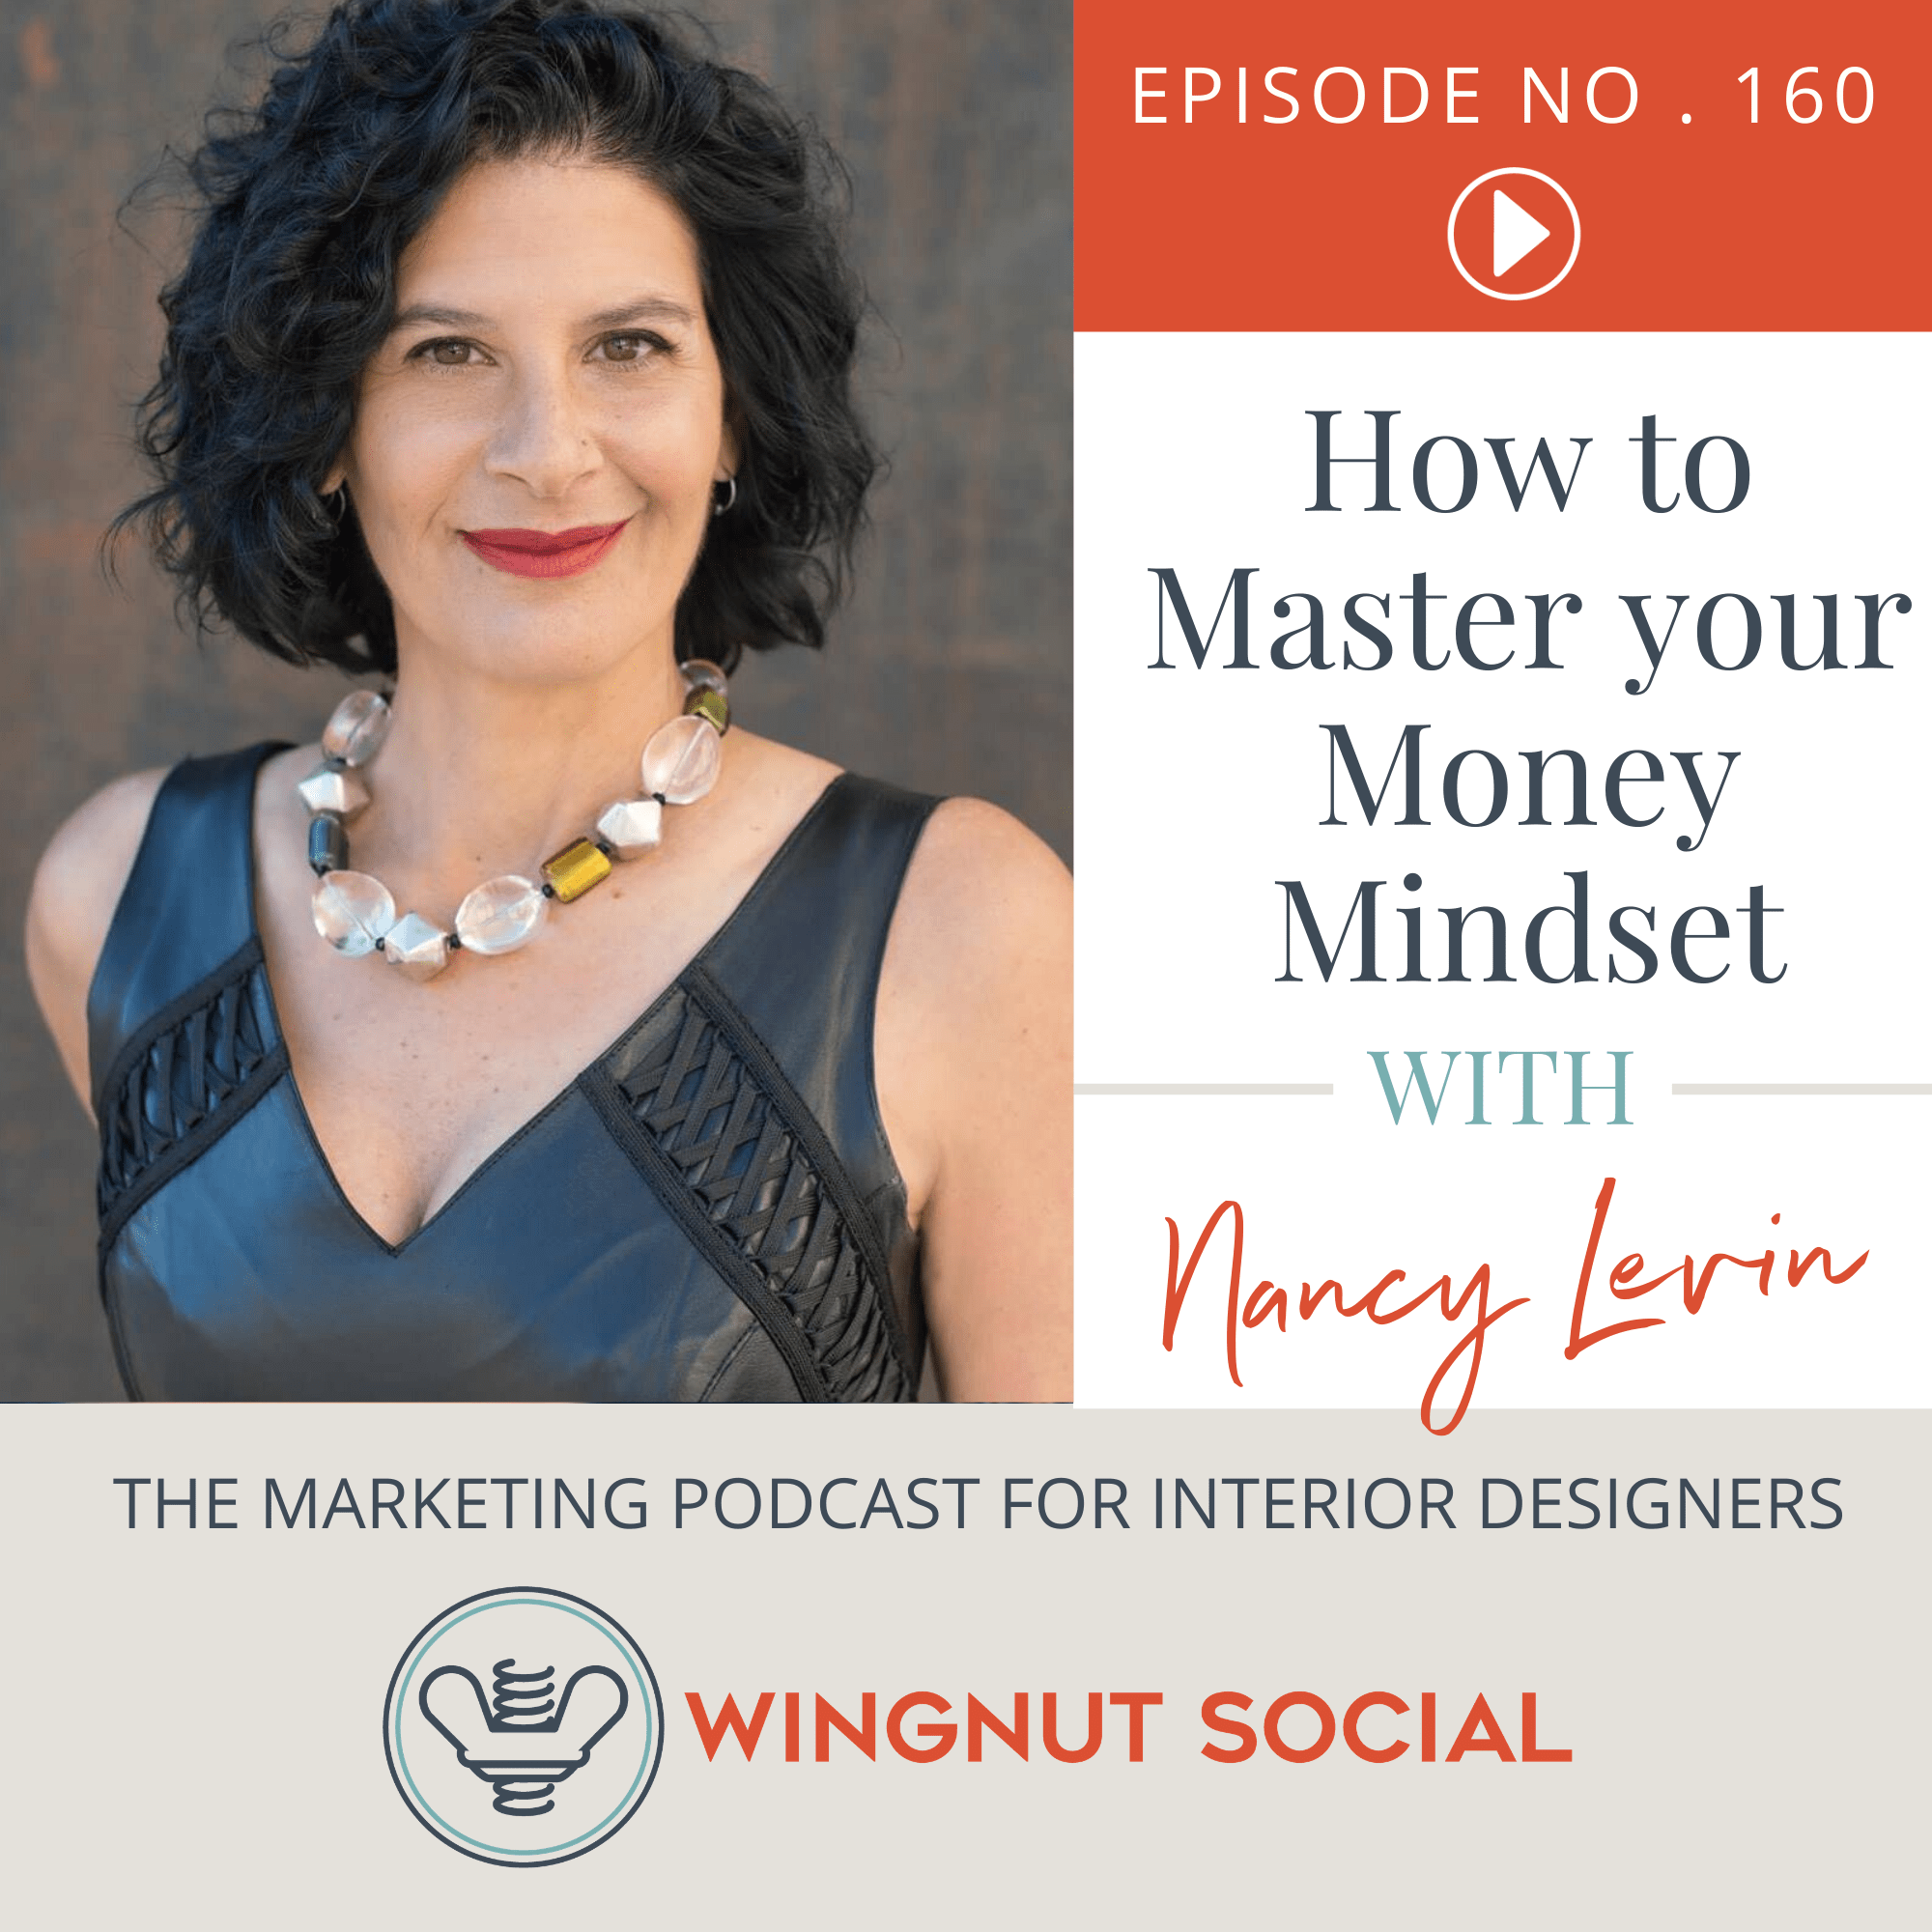 How to Master your Money Mindset [And STOP Struggling] with Nancy Levin